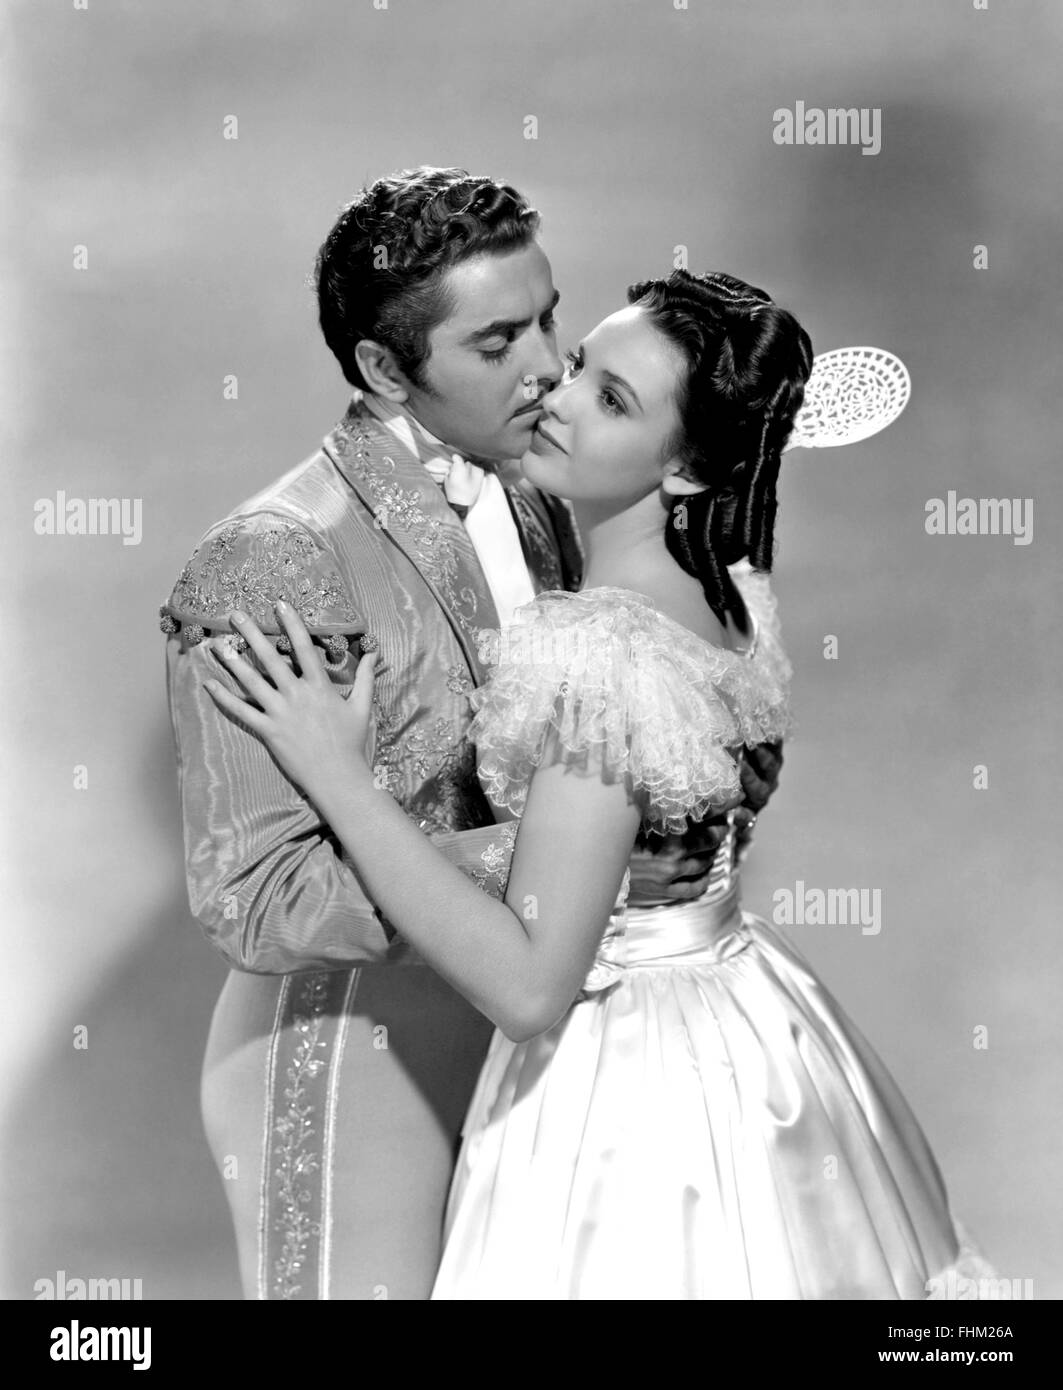 THE MARK OF ZORO 1940 20th Century Fox film with Linda Darnell and Tyrone Power - Stock Image